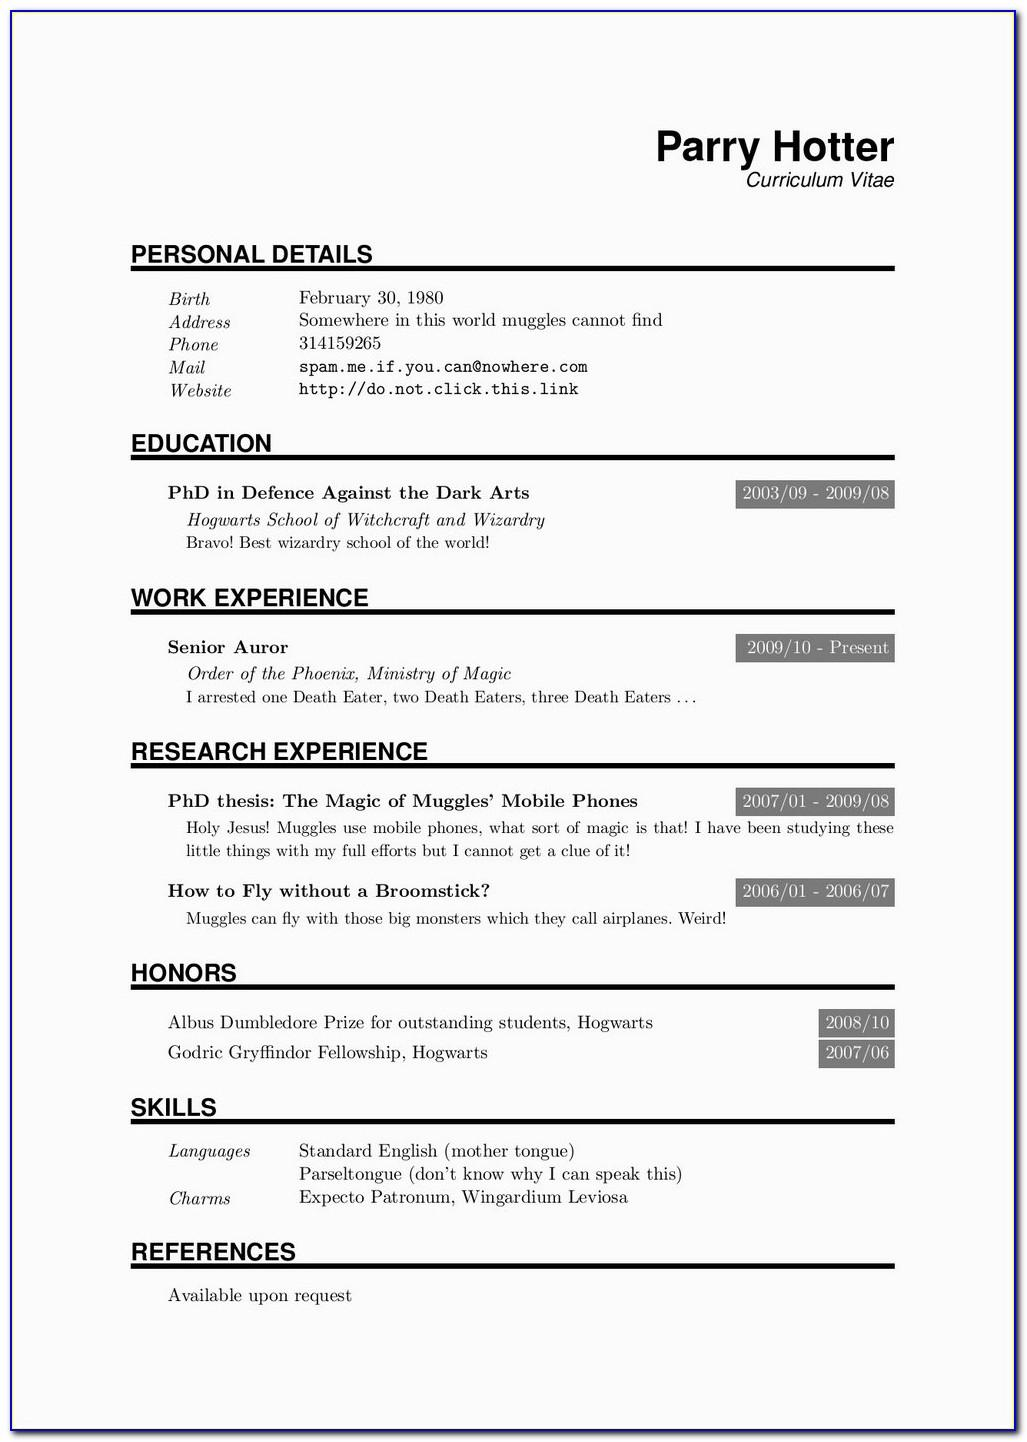 Resume Template Word Free Download Pdf